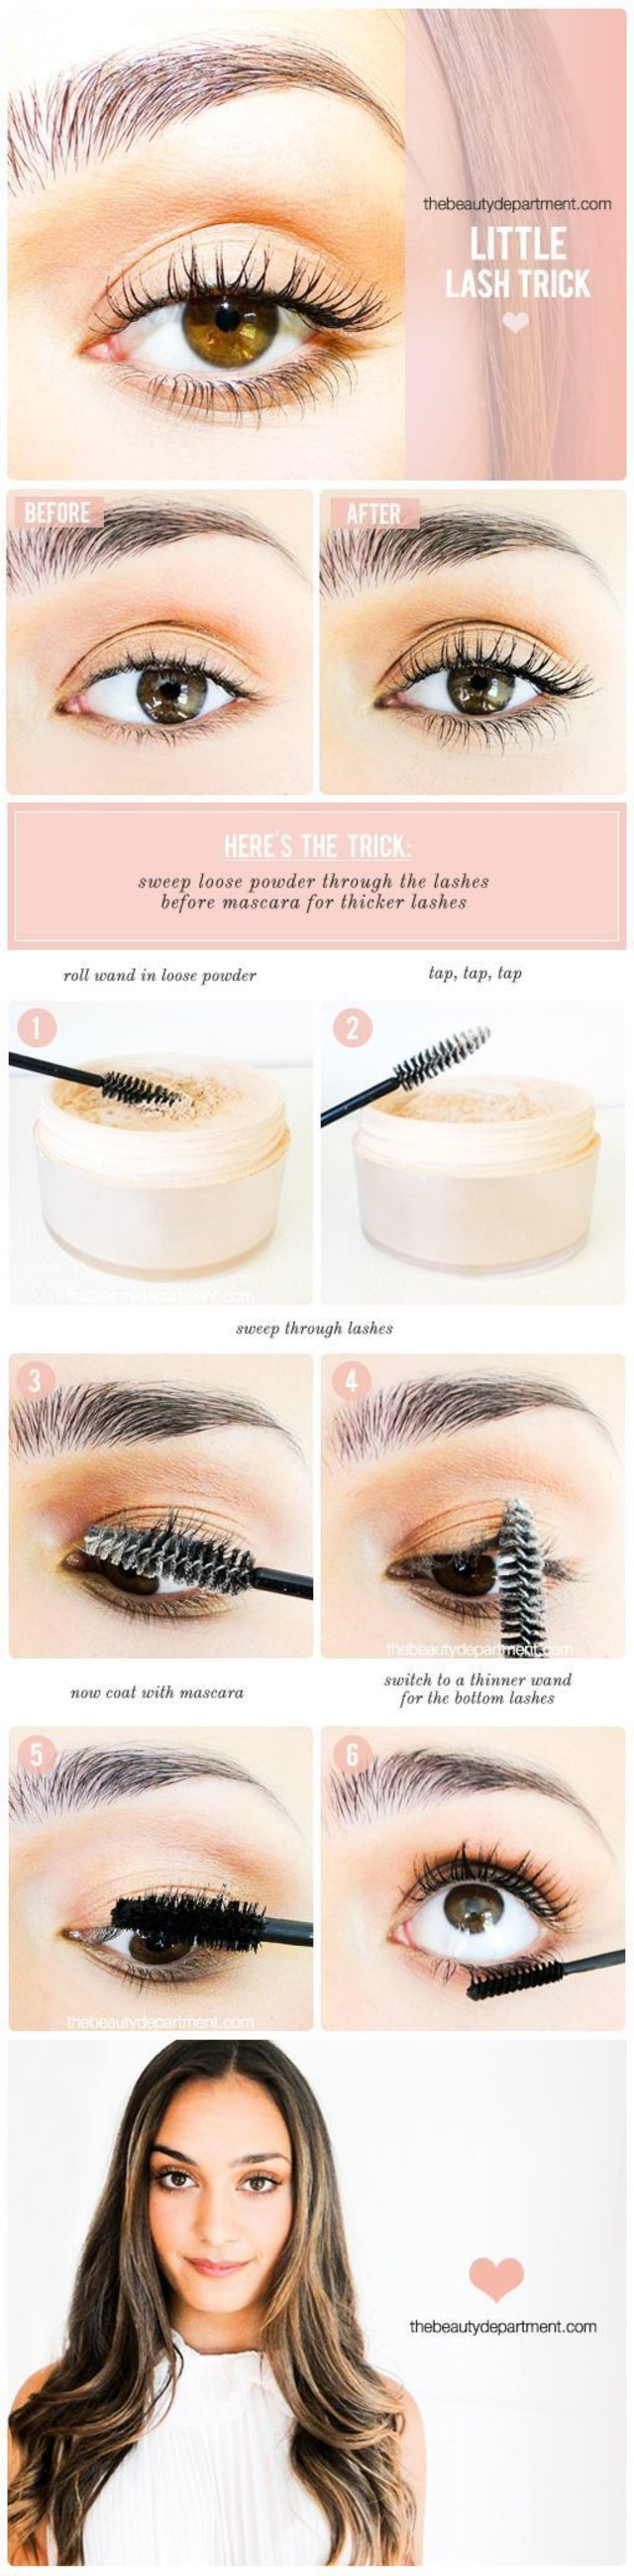 Little trick for lashes